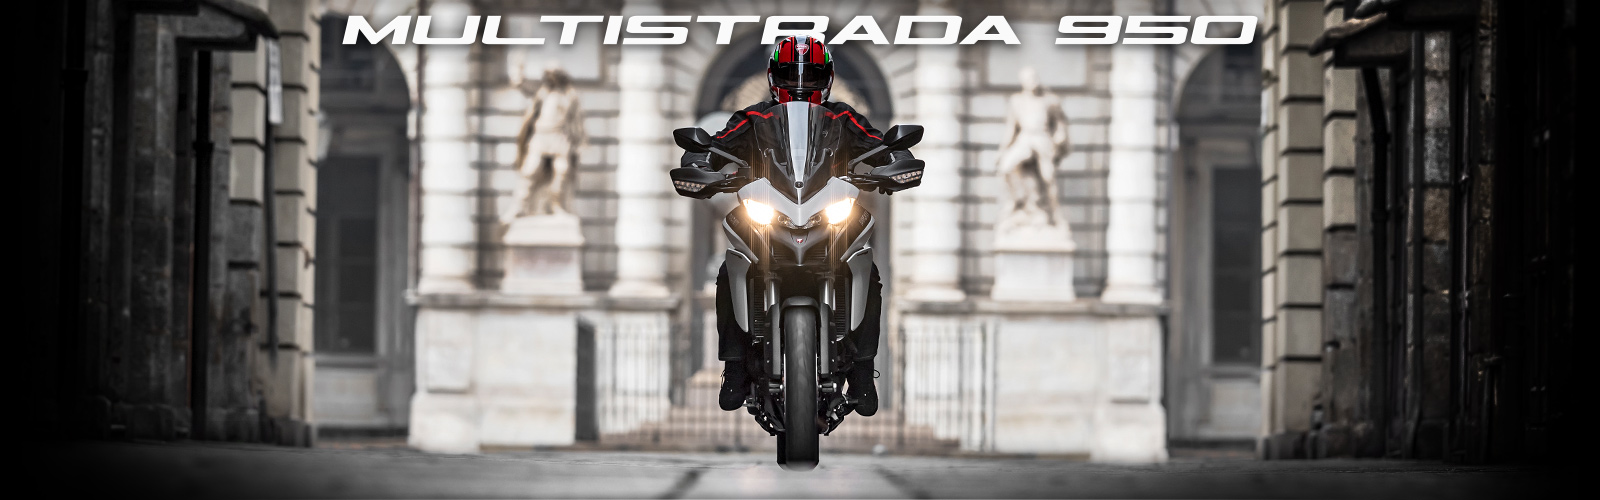 multistrada-950_cover_01-logo_hex-000000_1600x500